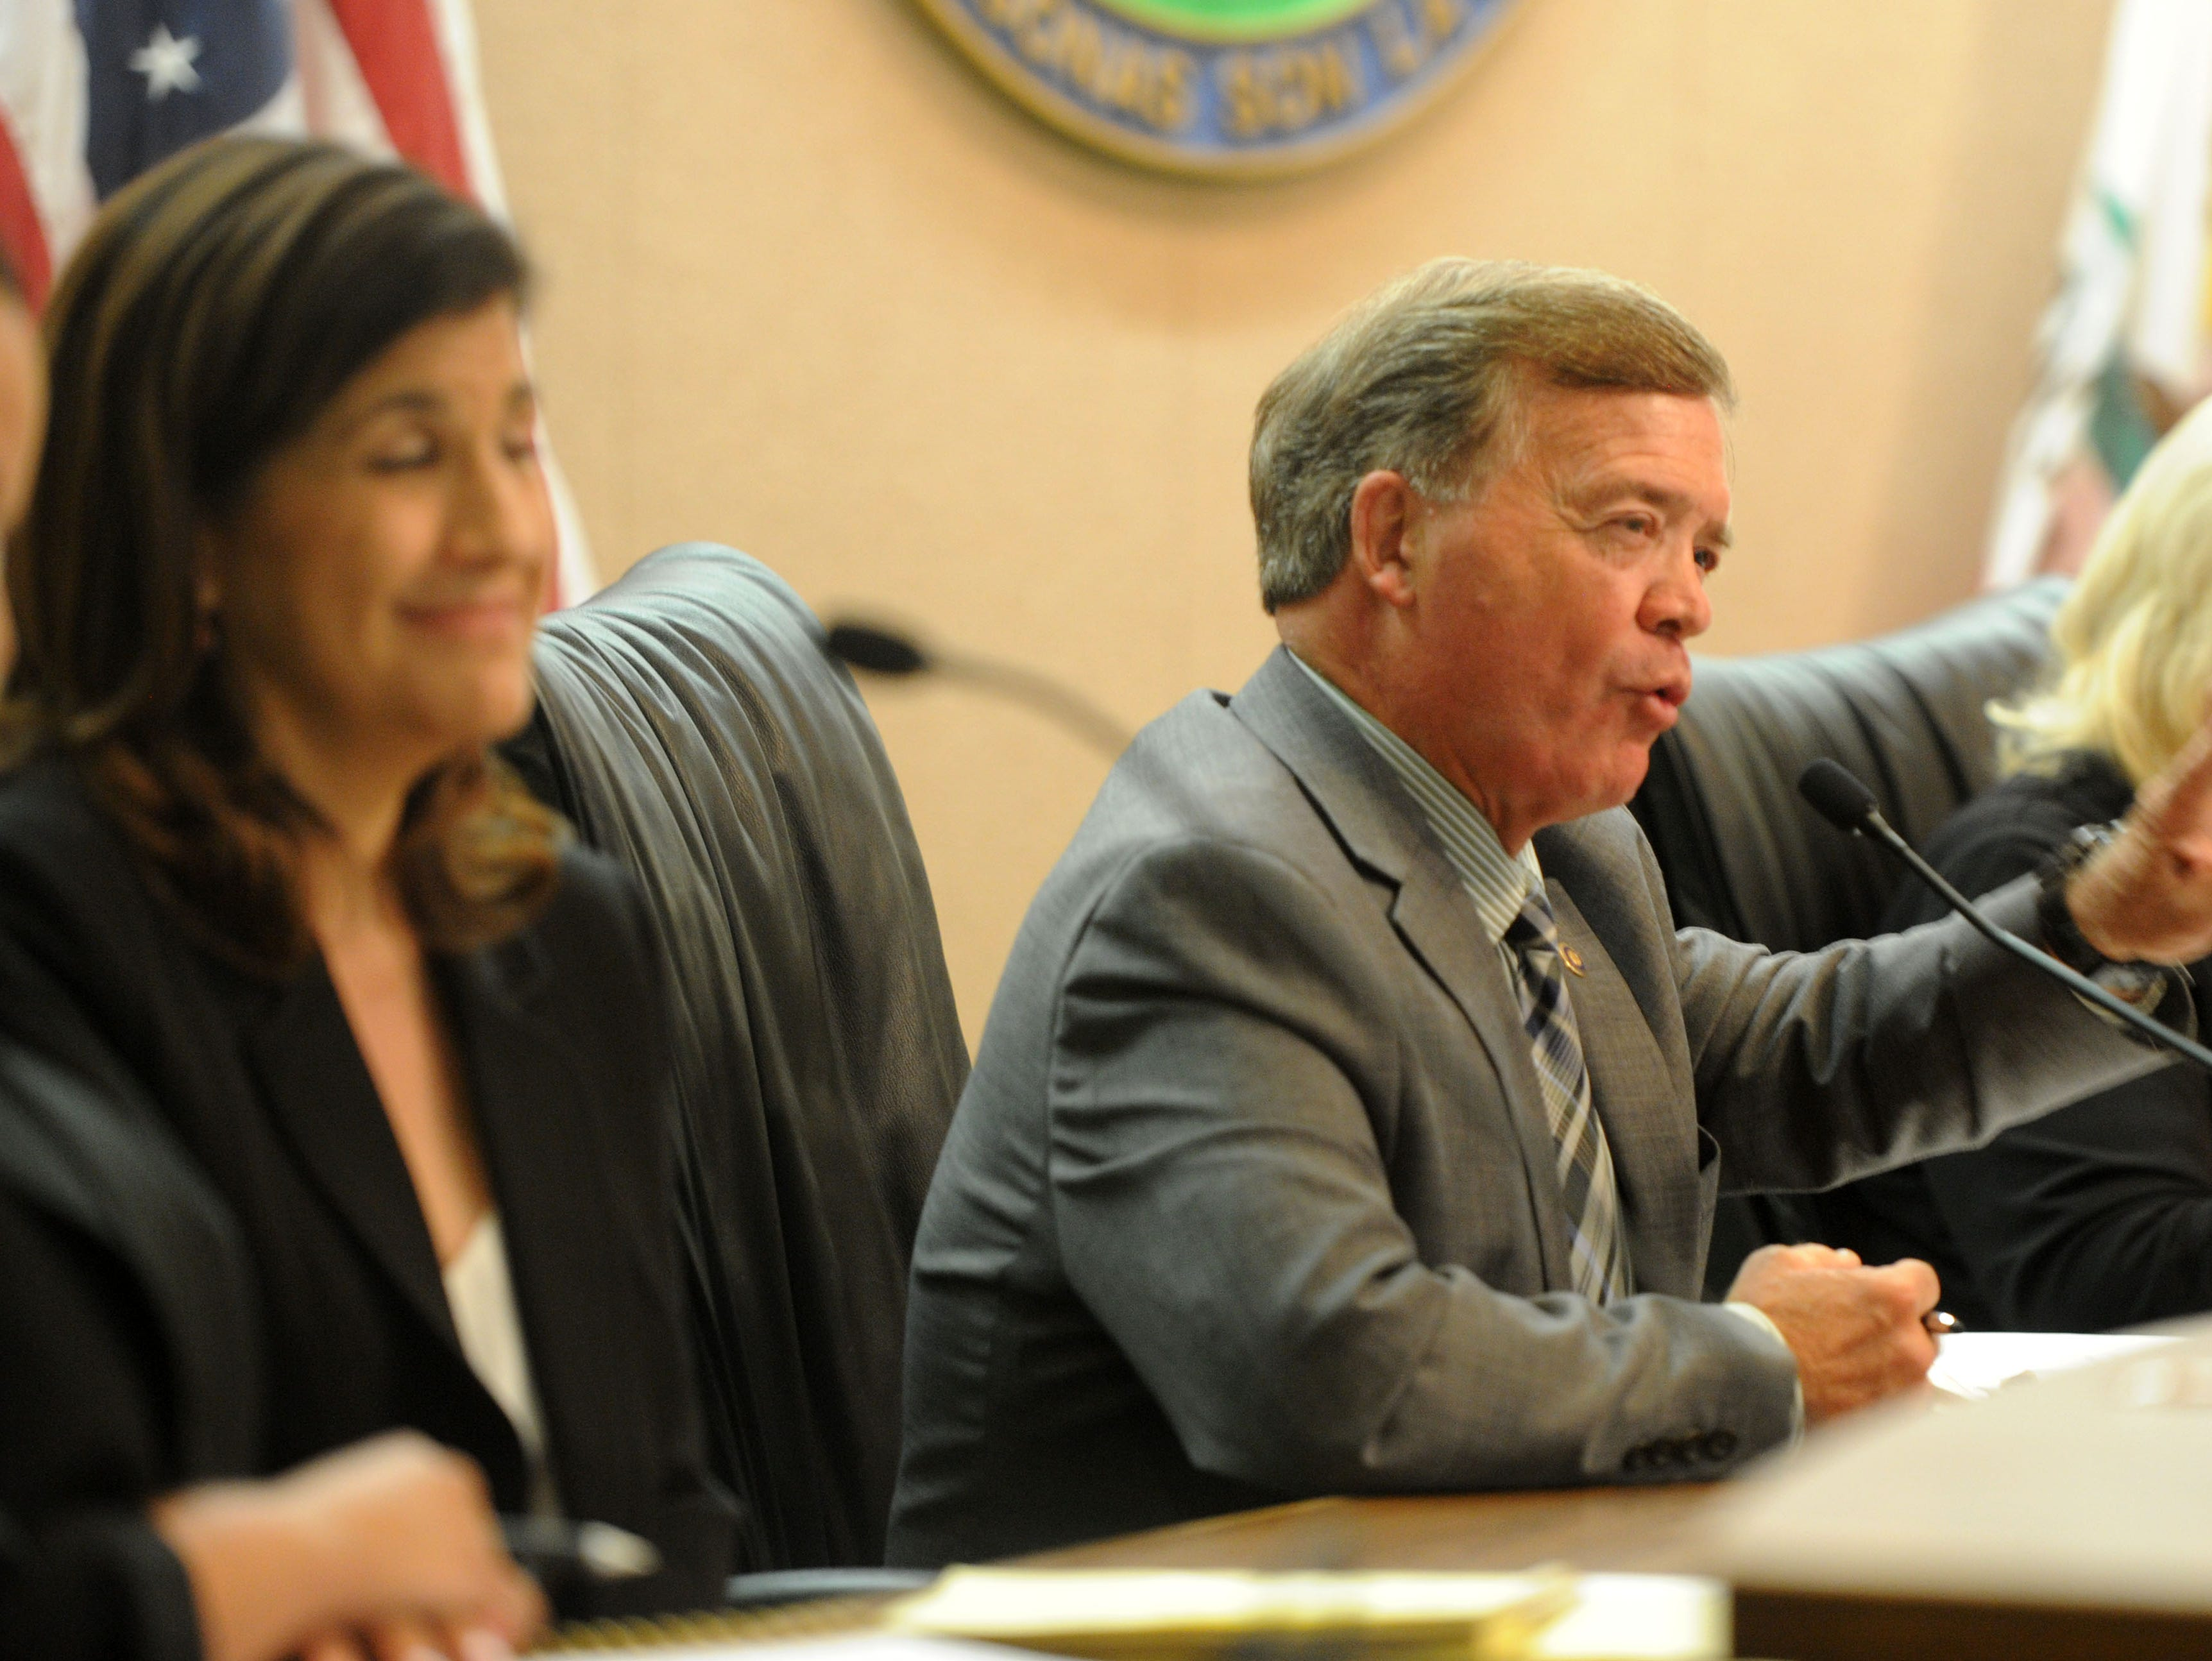 Mike Morgan answers questions Tuesday night for the Camarillo City Council race. Nine candidates are running to fill three seats. The forum was put on byVentura County League of Women Voters.